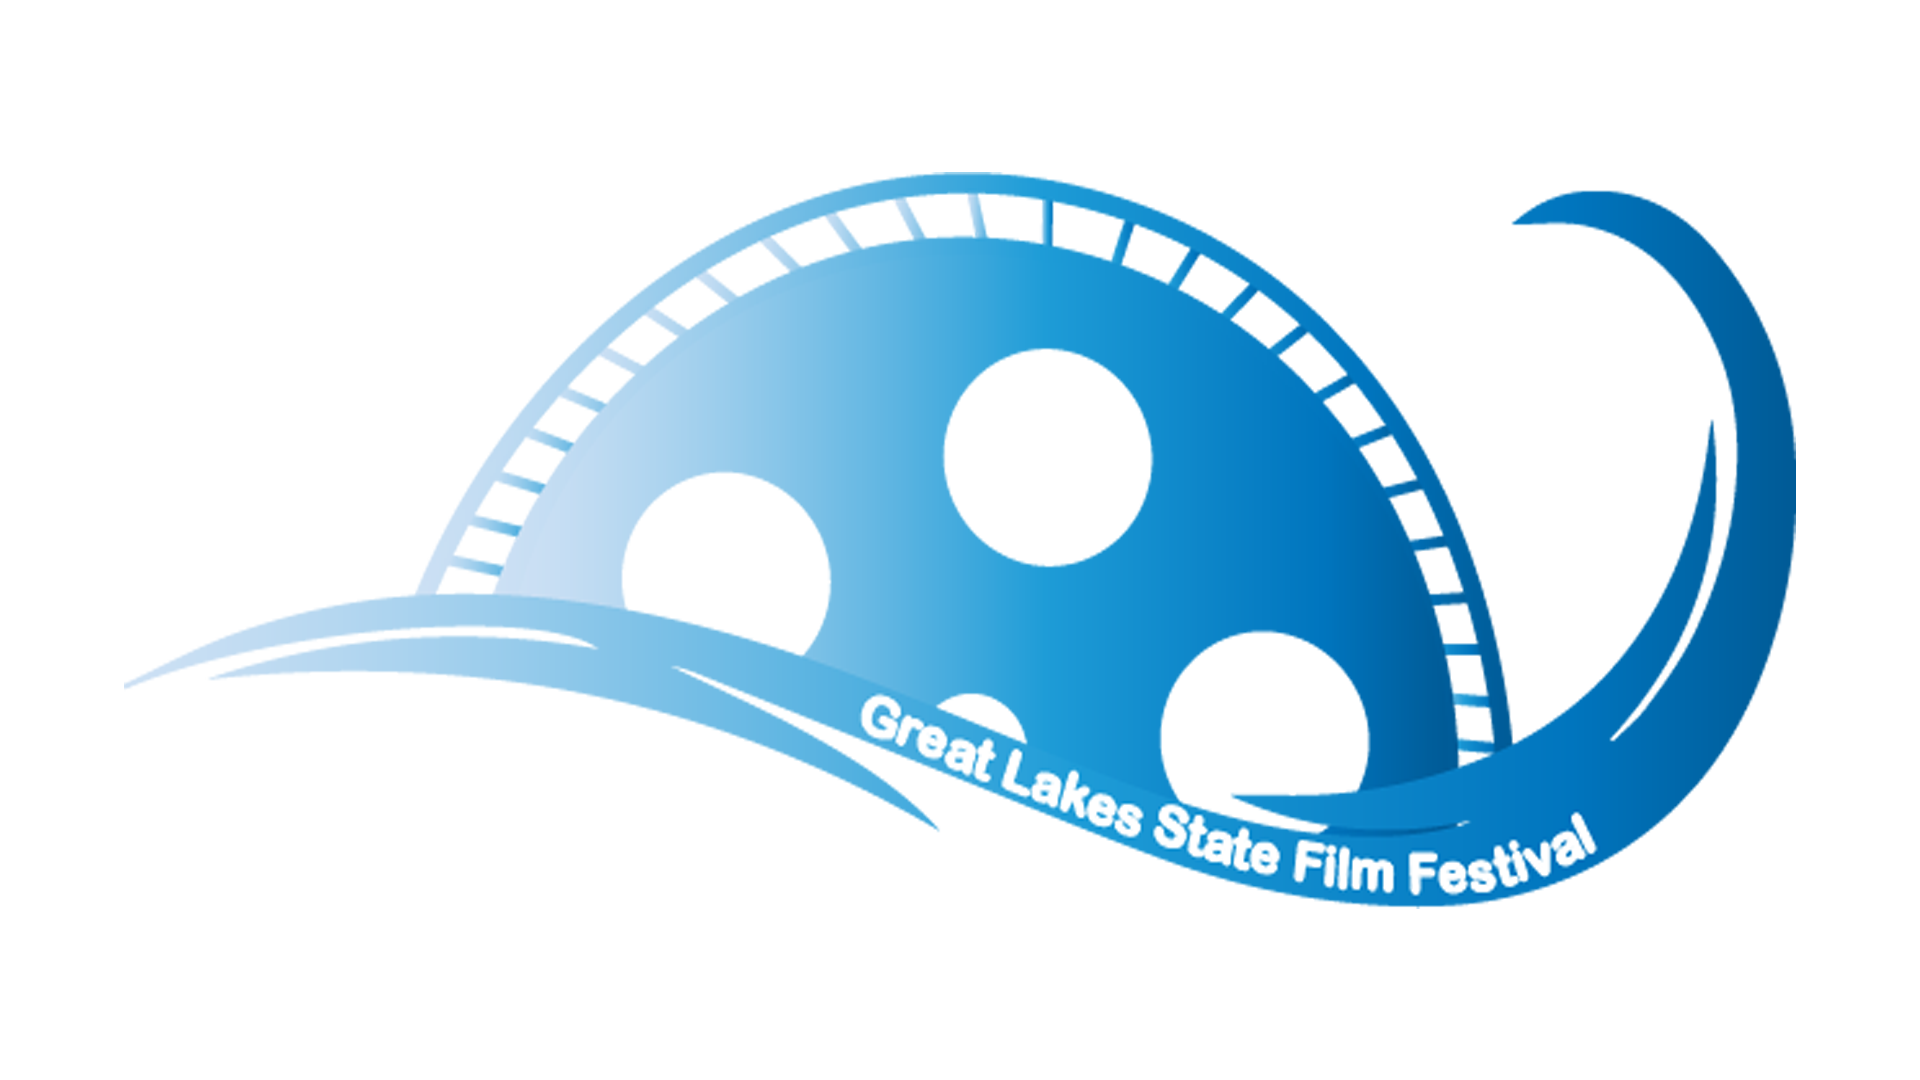 Great Lakes State Film Festival